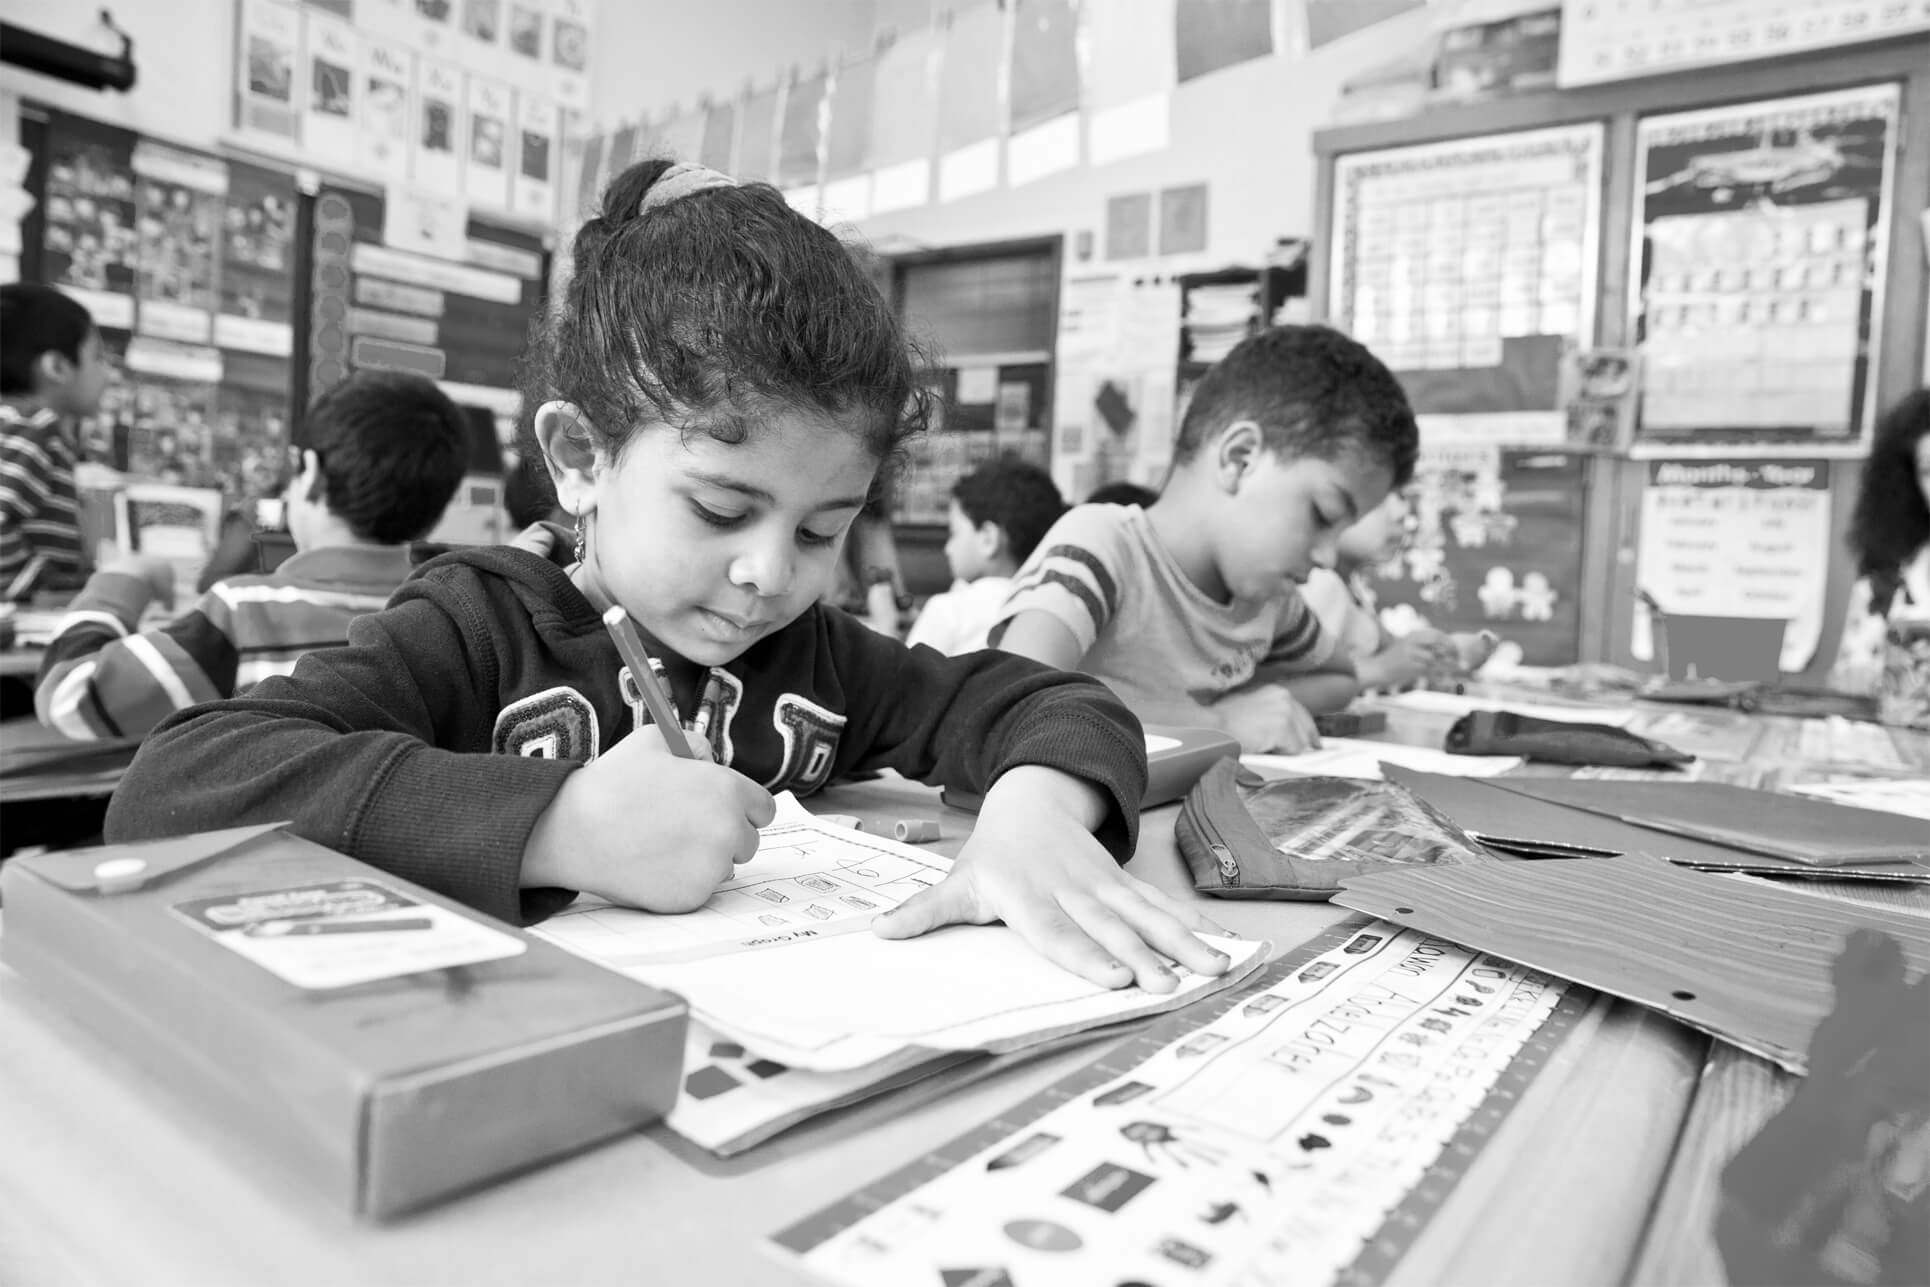 Children writing in workbooks in a classroom.